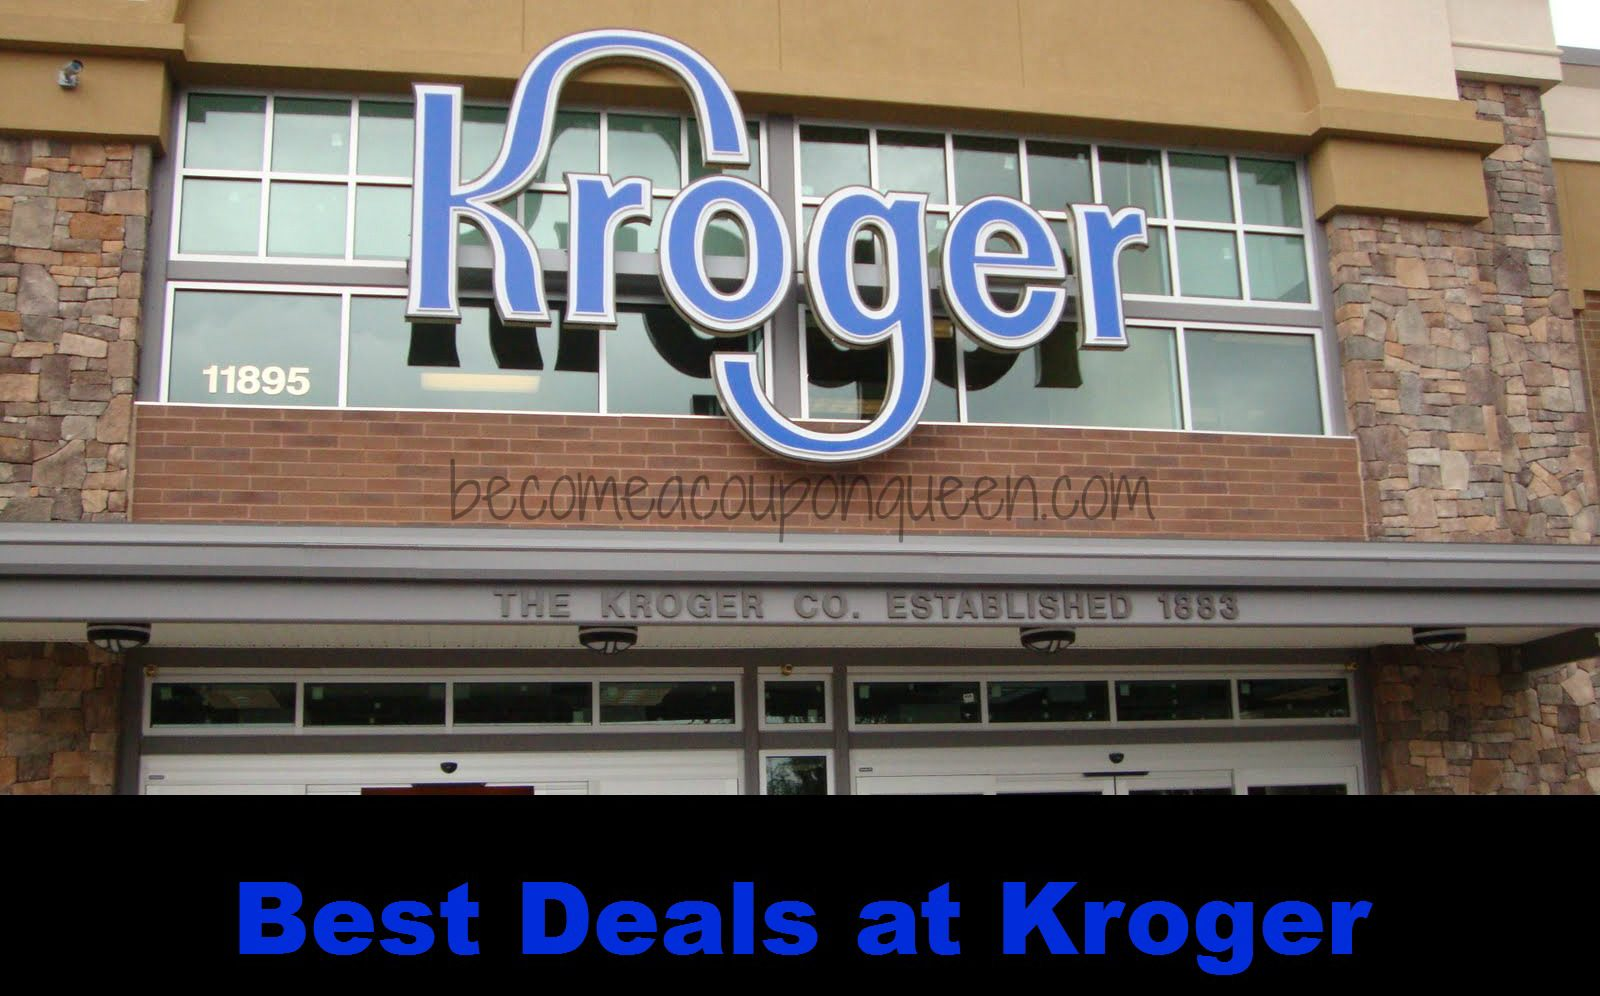 Kroger discount coupons